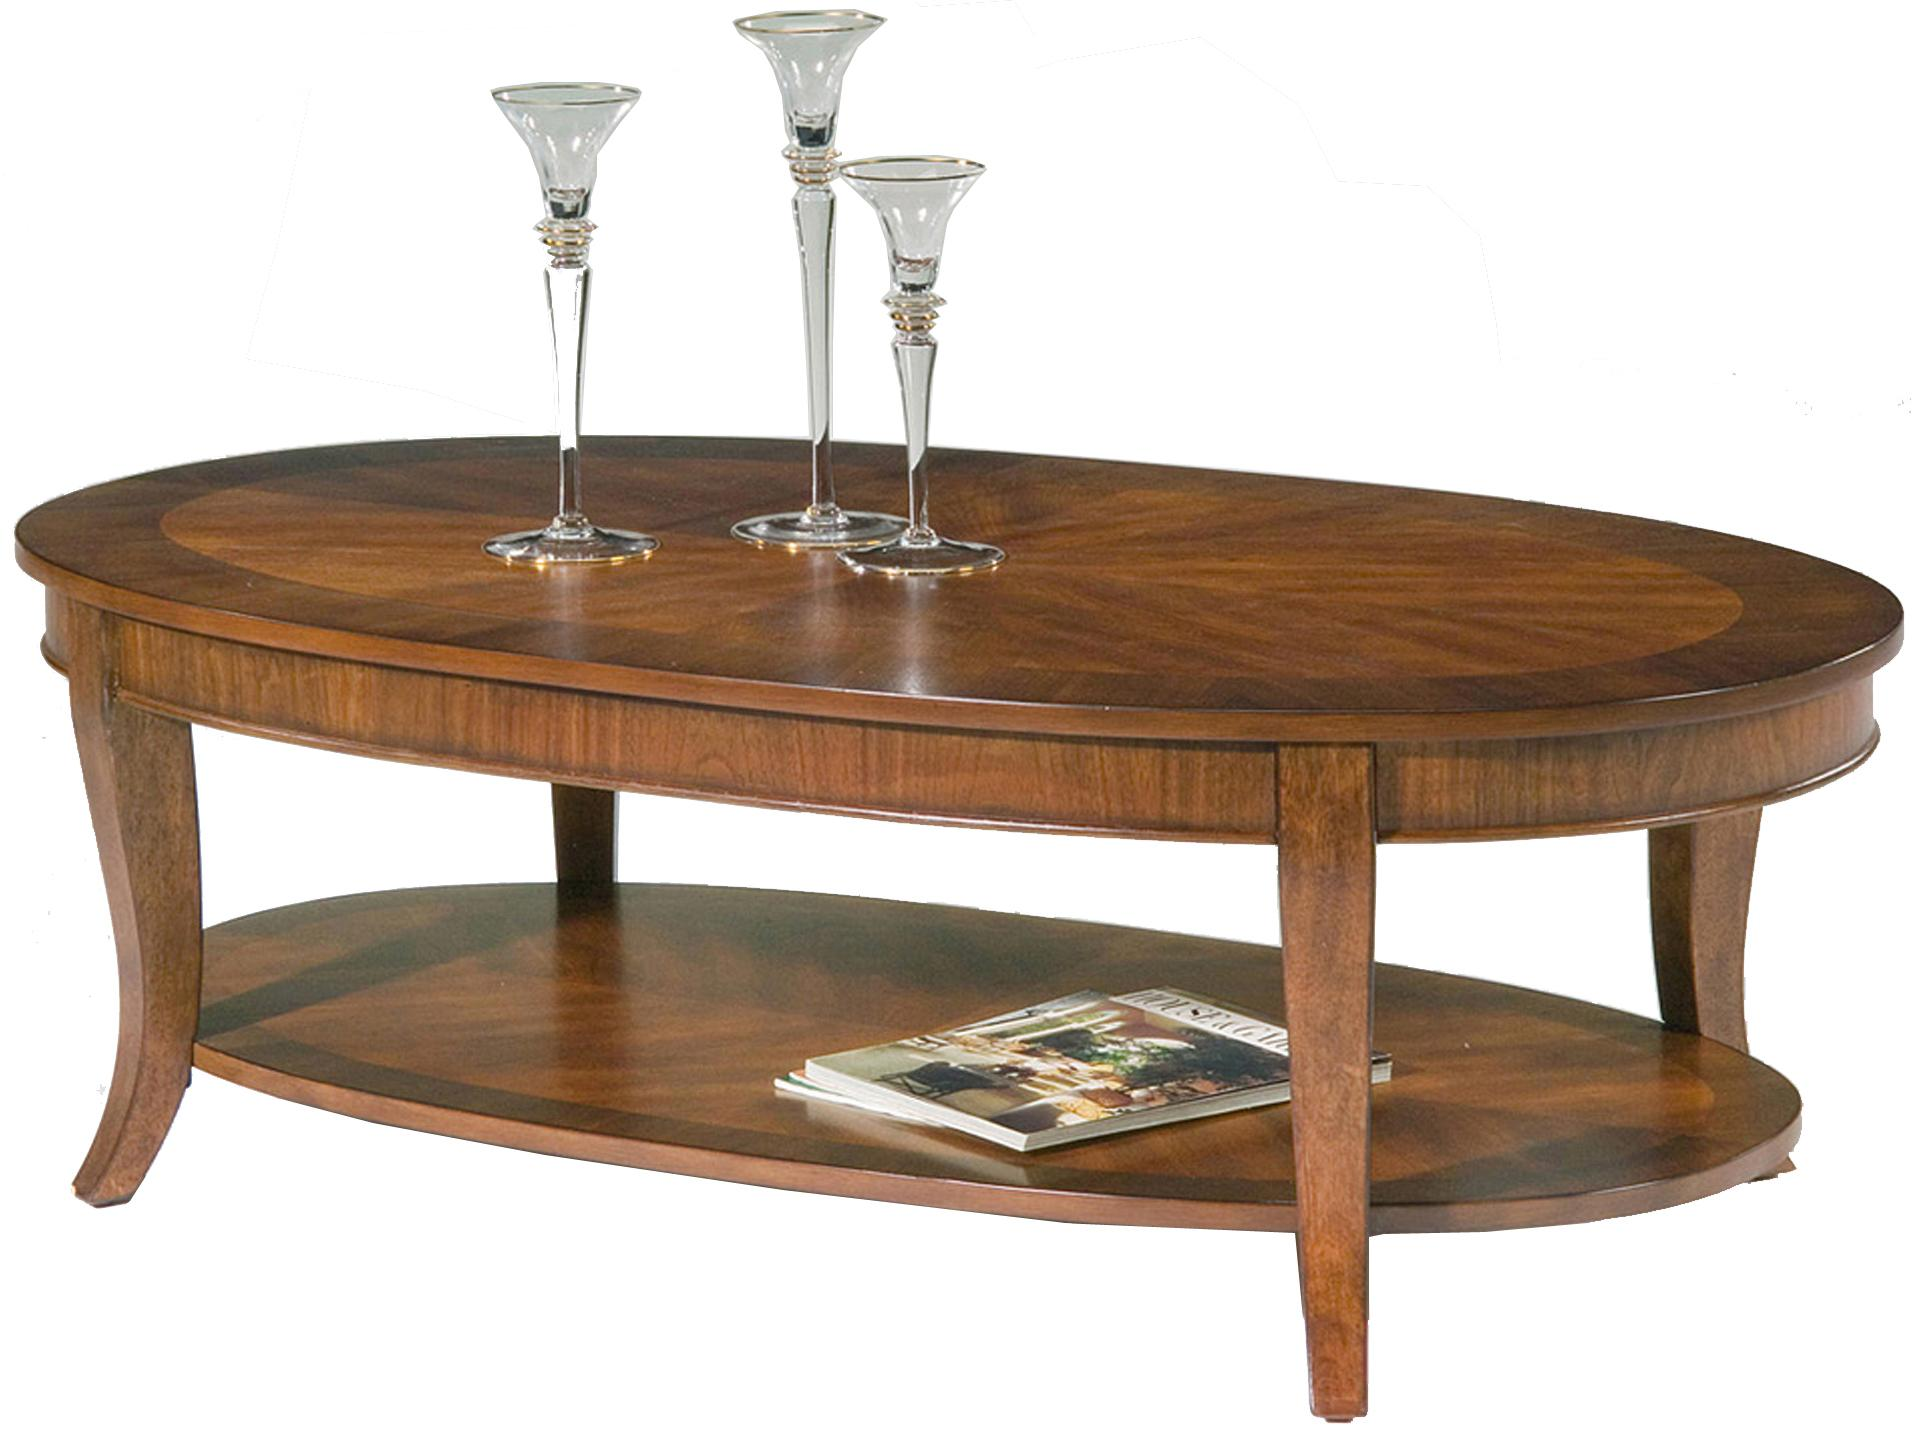 Liberty Furniture Bradshaw Oval Cocktail Table - Item Number: 748-OT1011